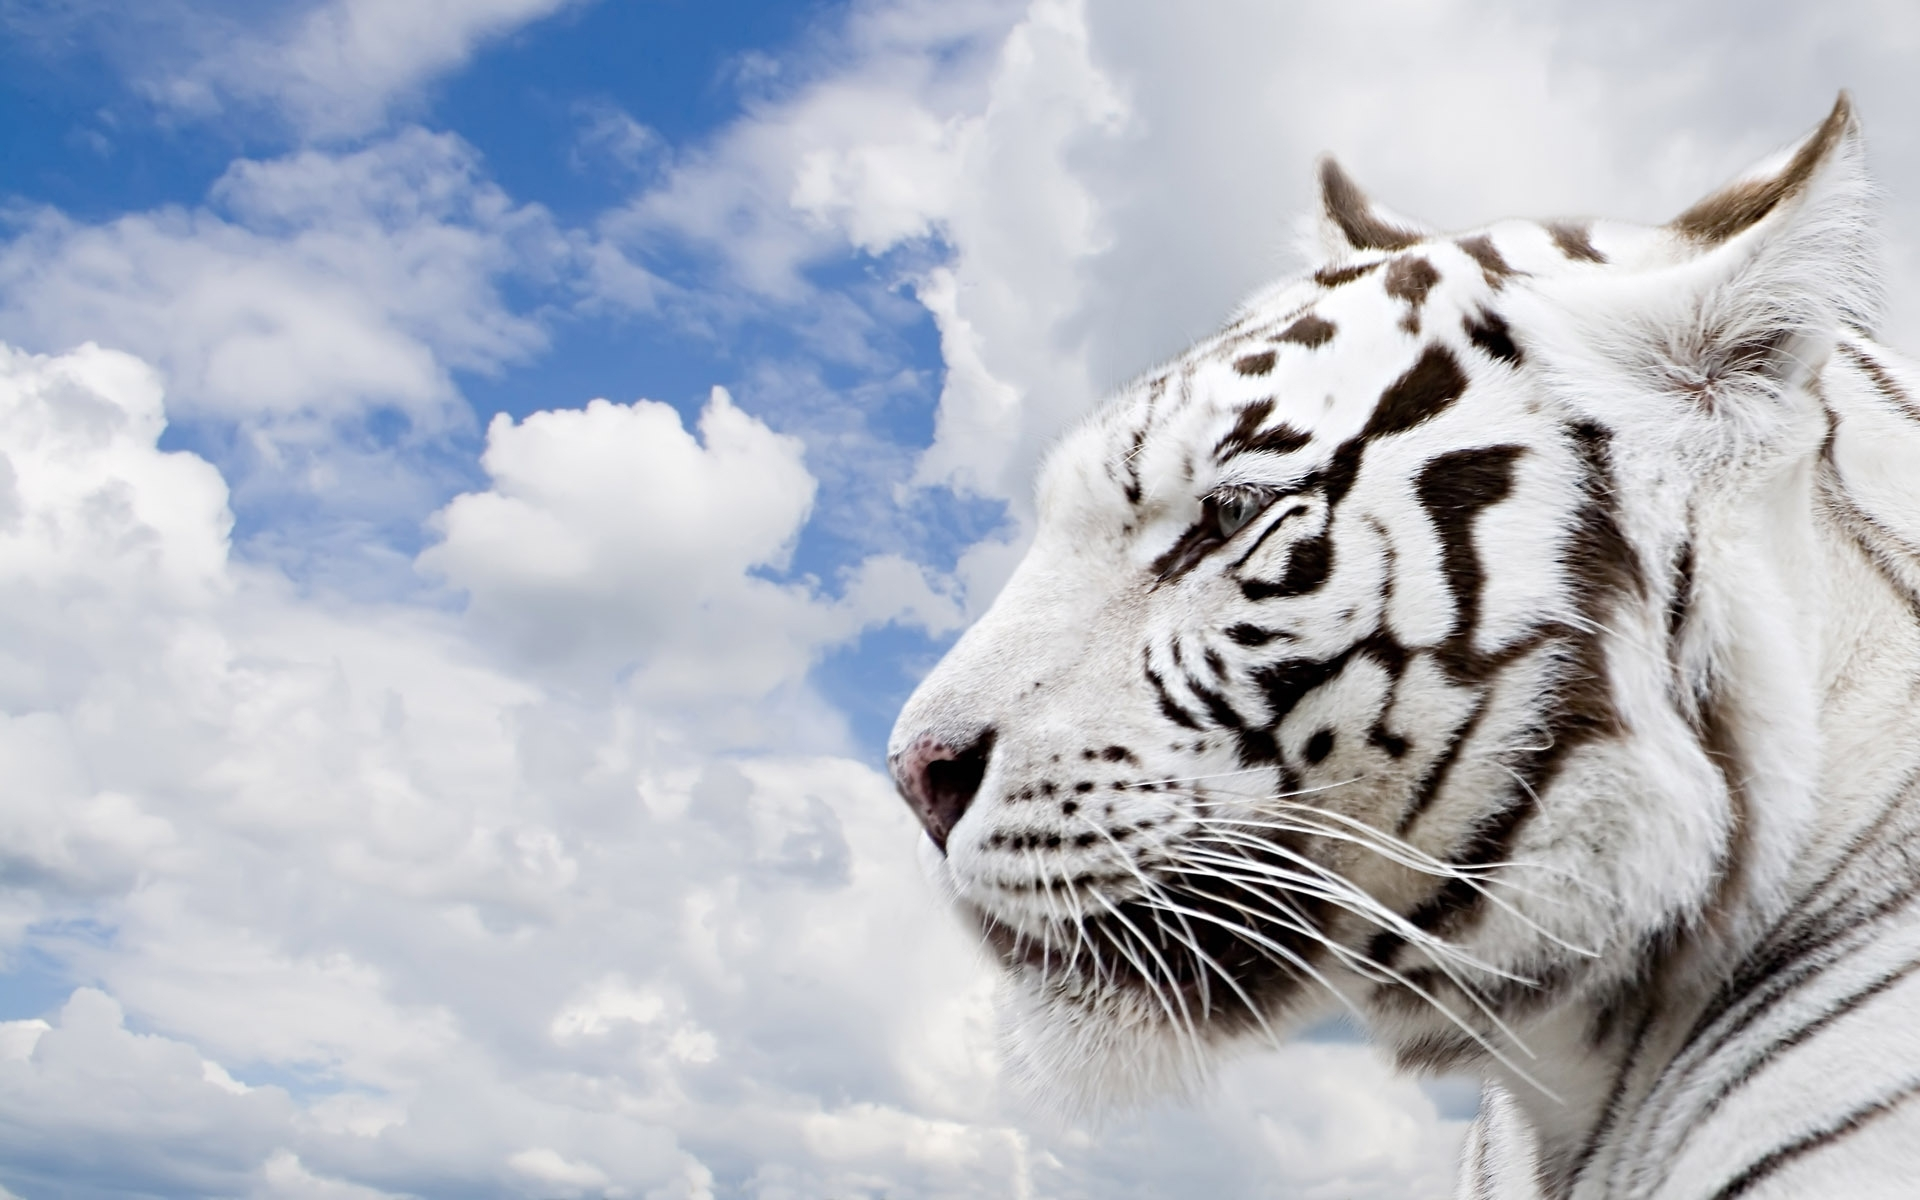 41677 download wallpaper Animals, Tigers screensavers and pictures for free